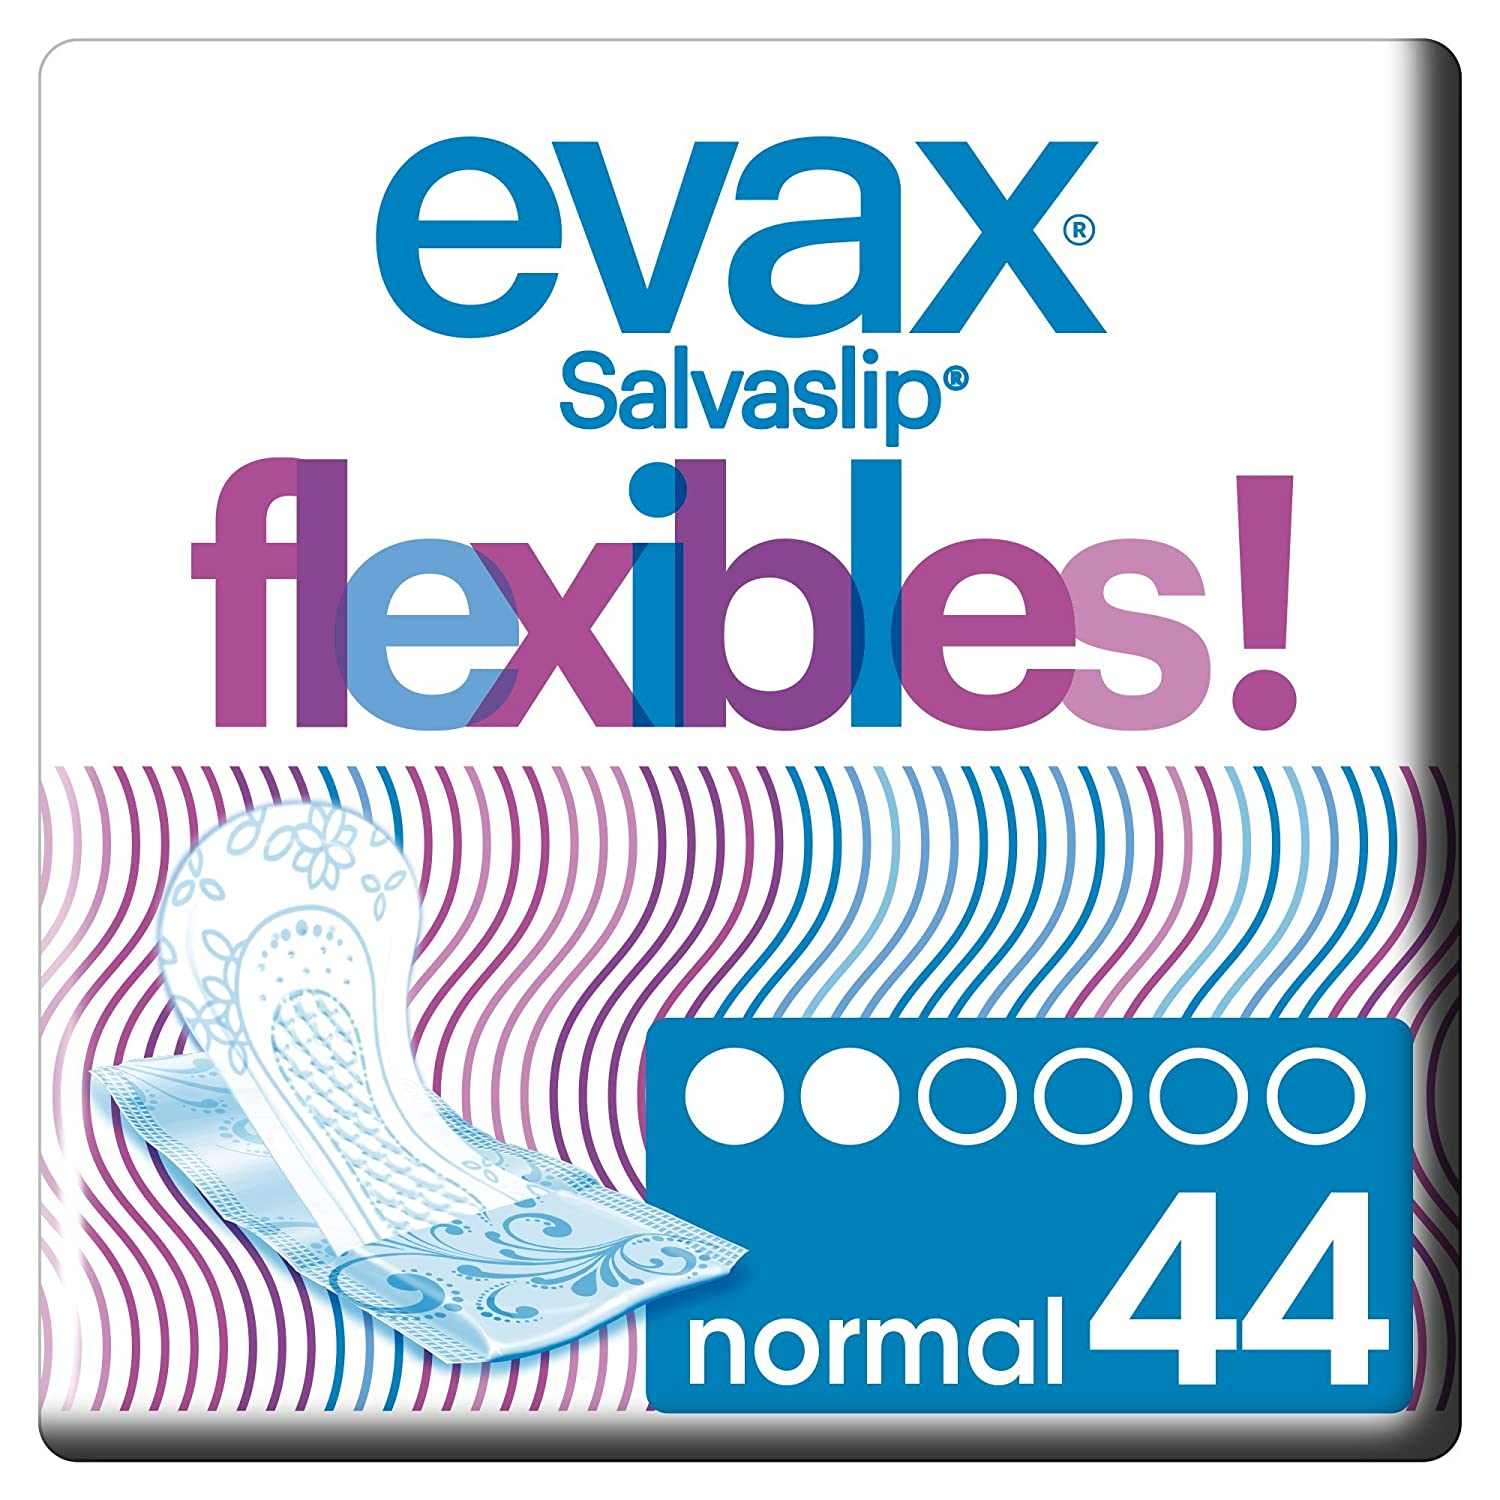 Evax salvaslip  –   Towels Flexible  –   44  units Procter & Gamble 4015400724766